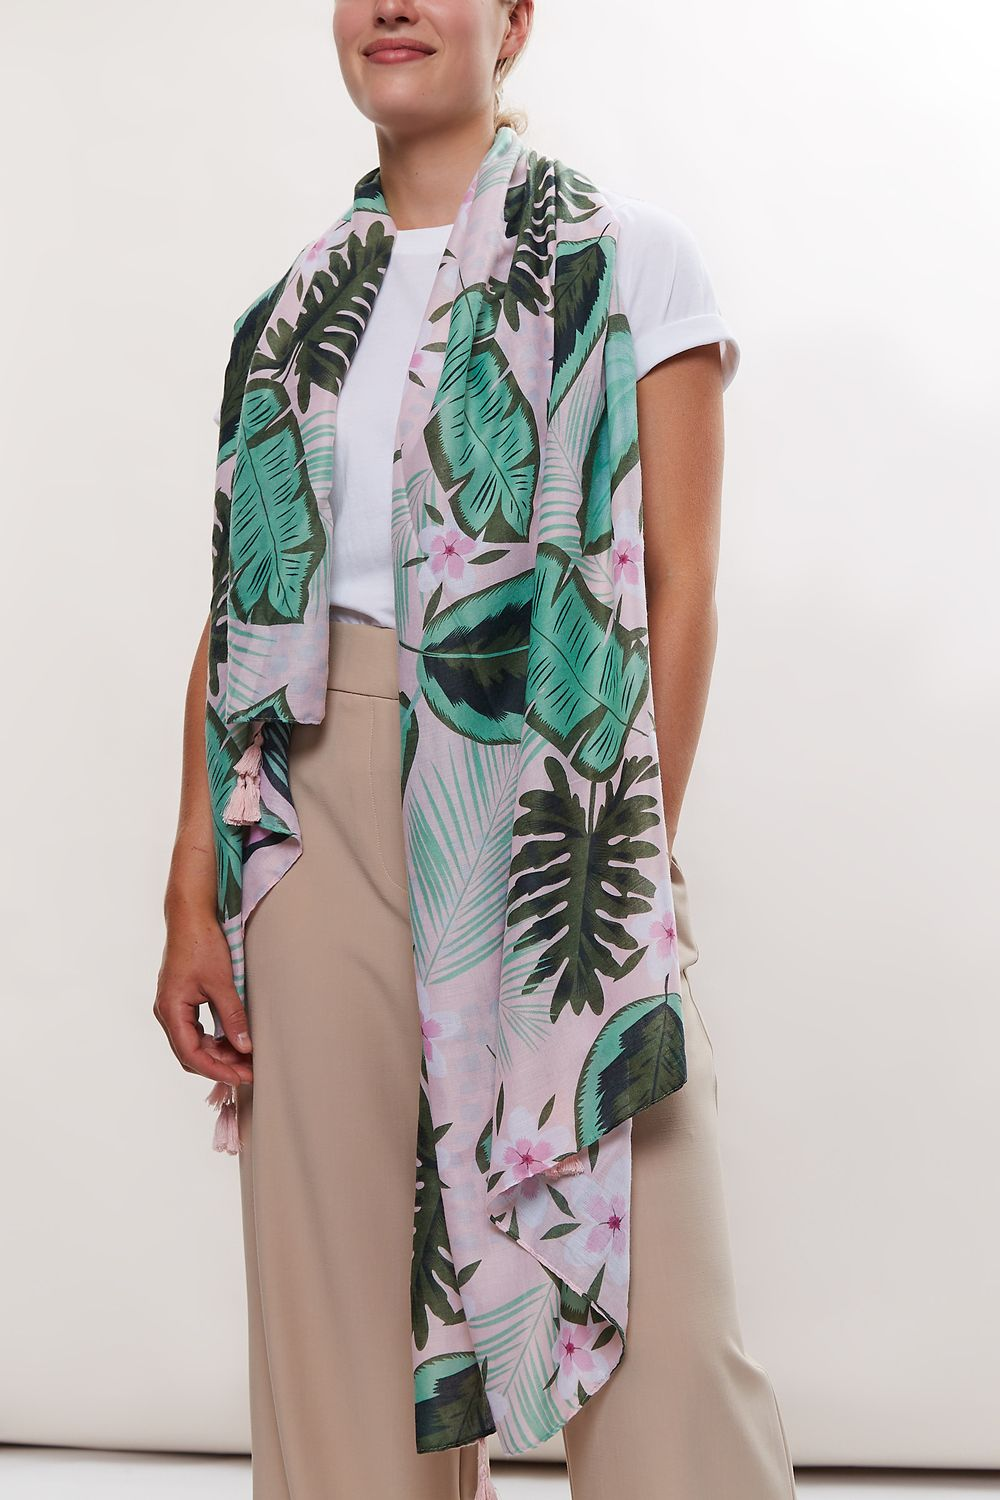 Louche Plant Lady Printed Scarf